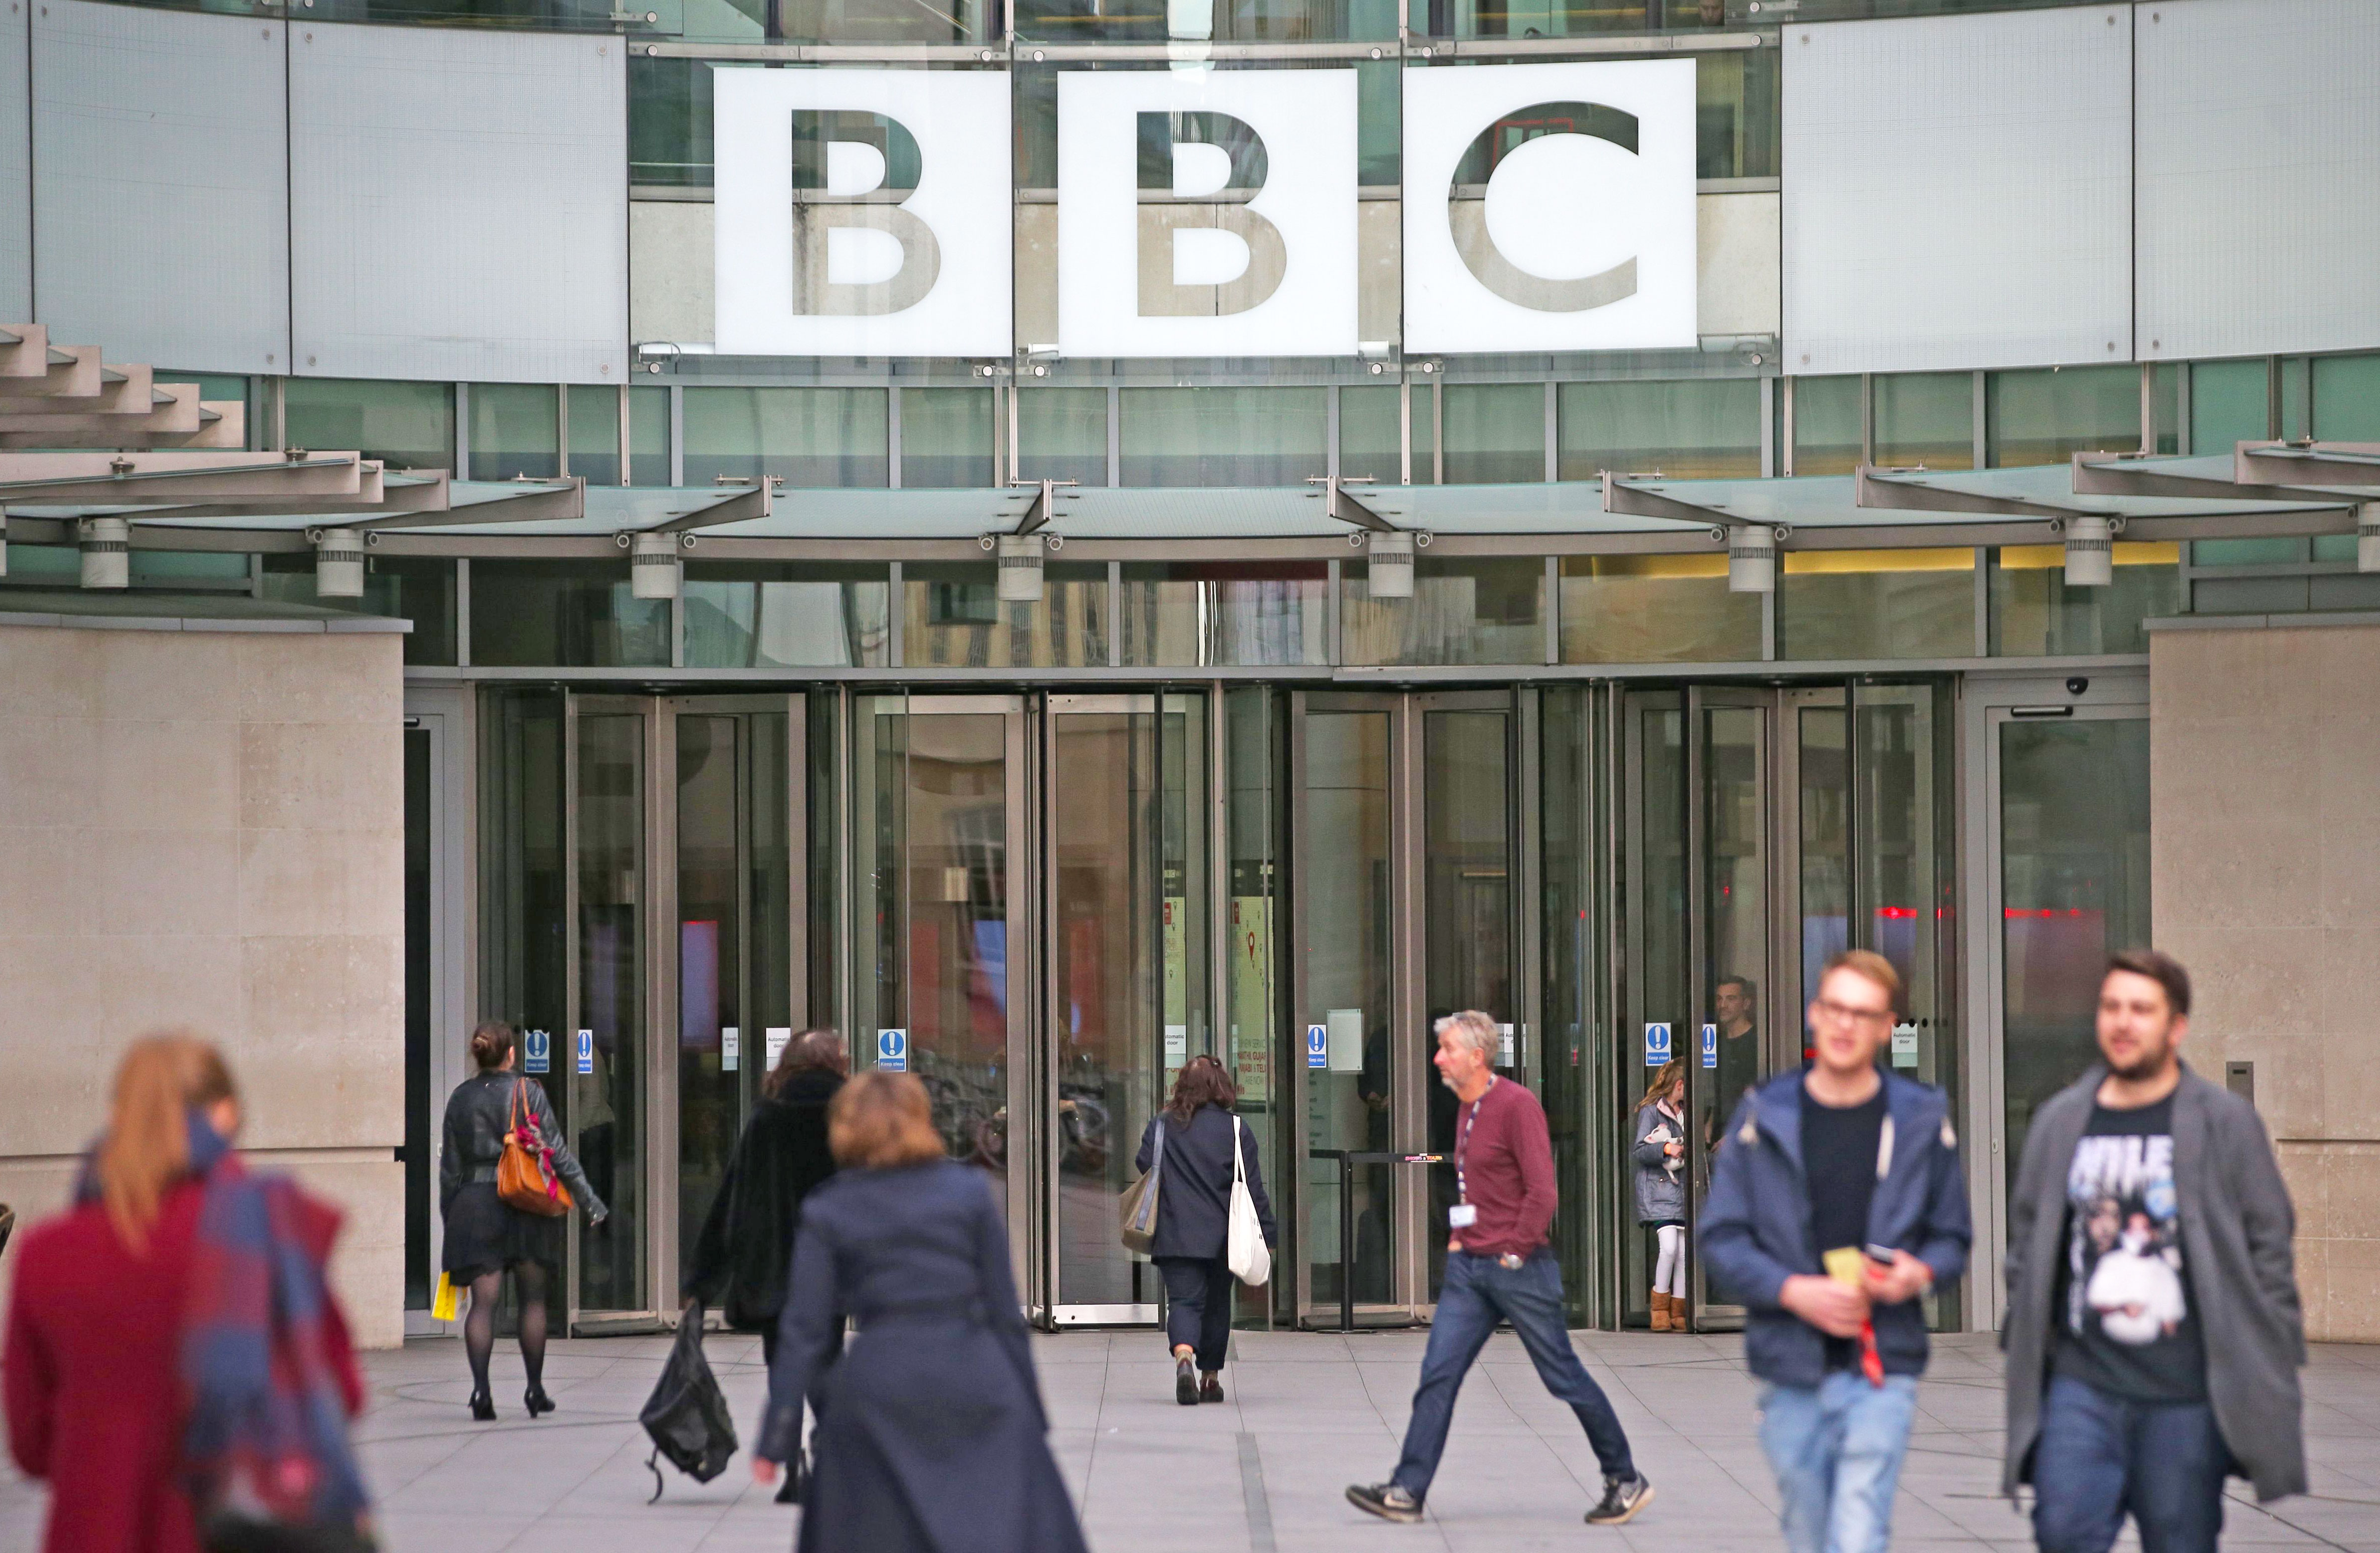 BBC will open its Sounds app to non-BBC podcasts